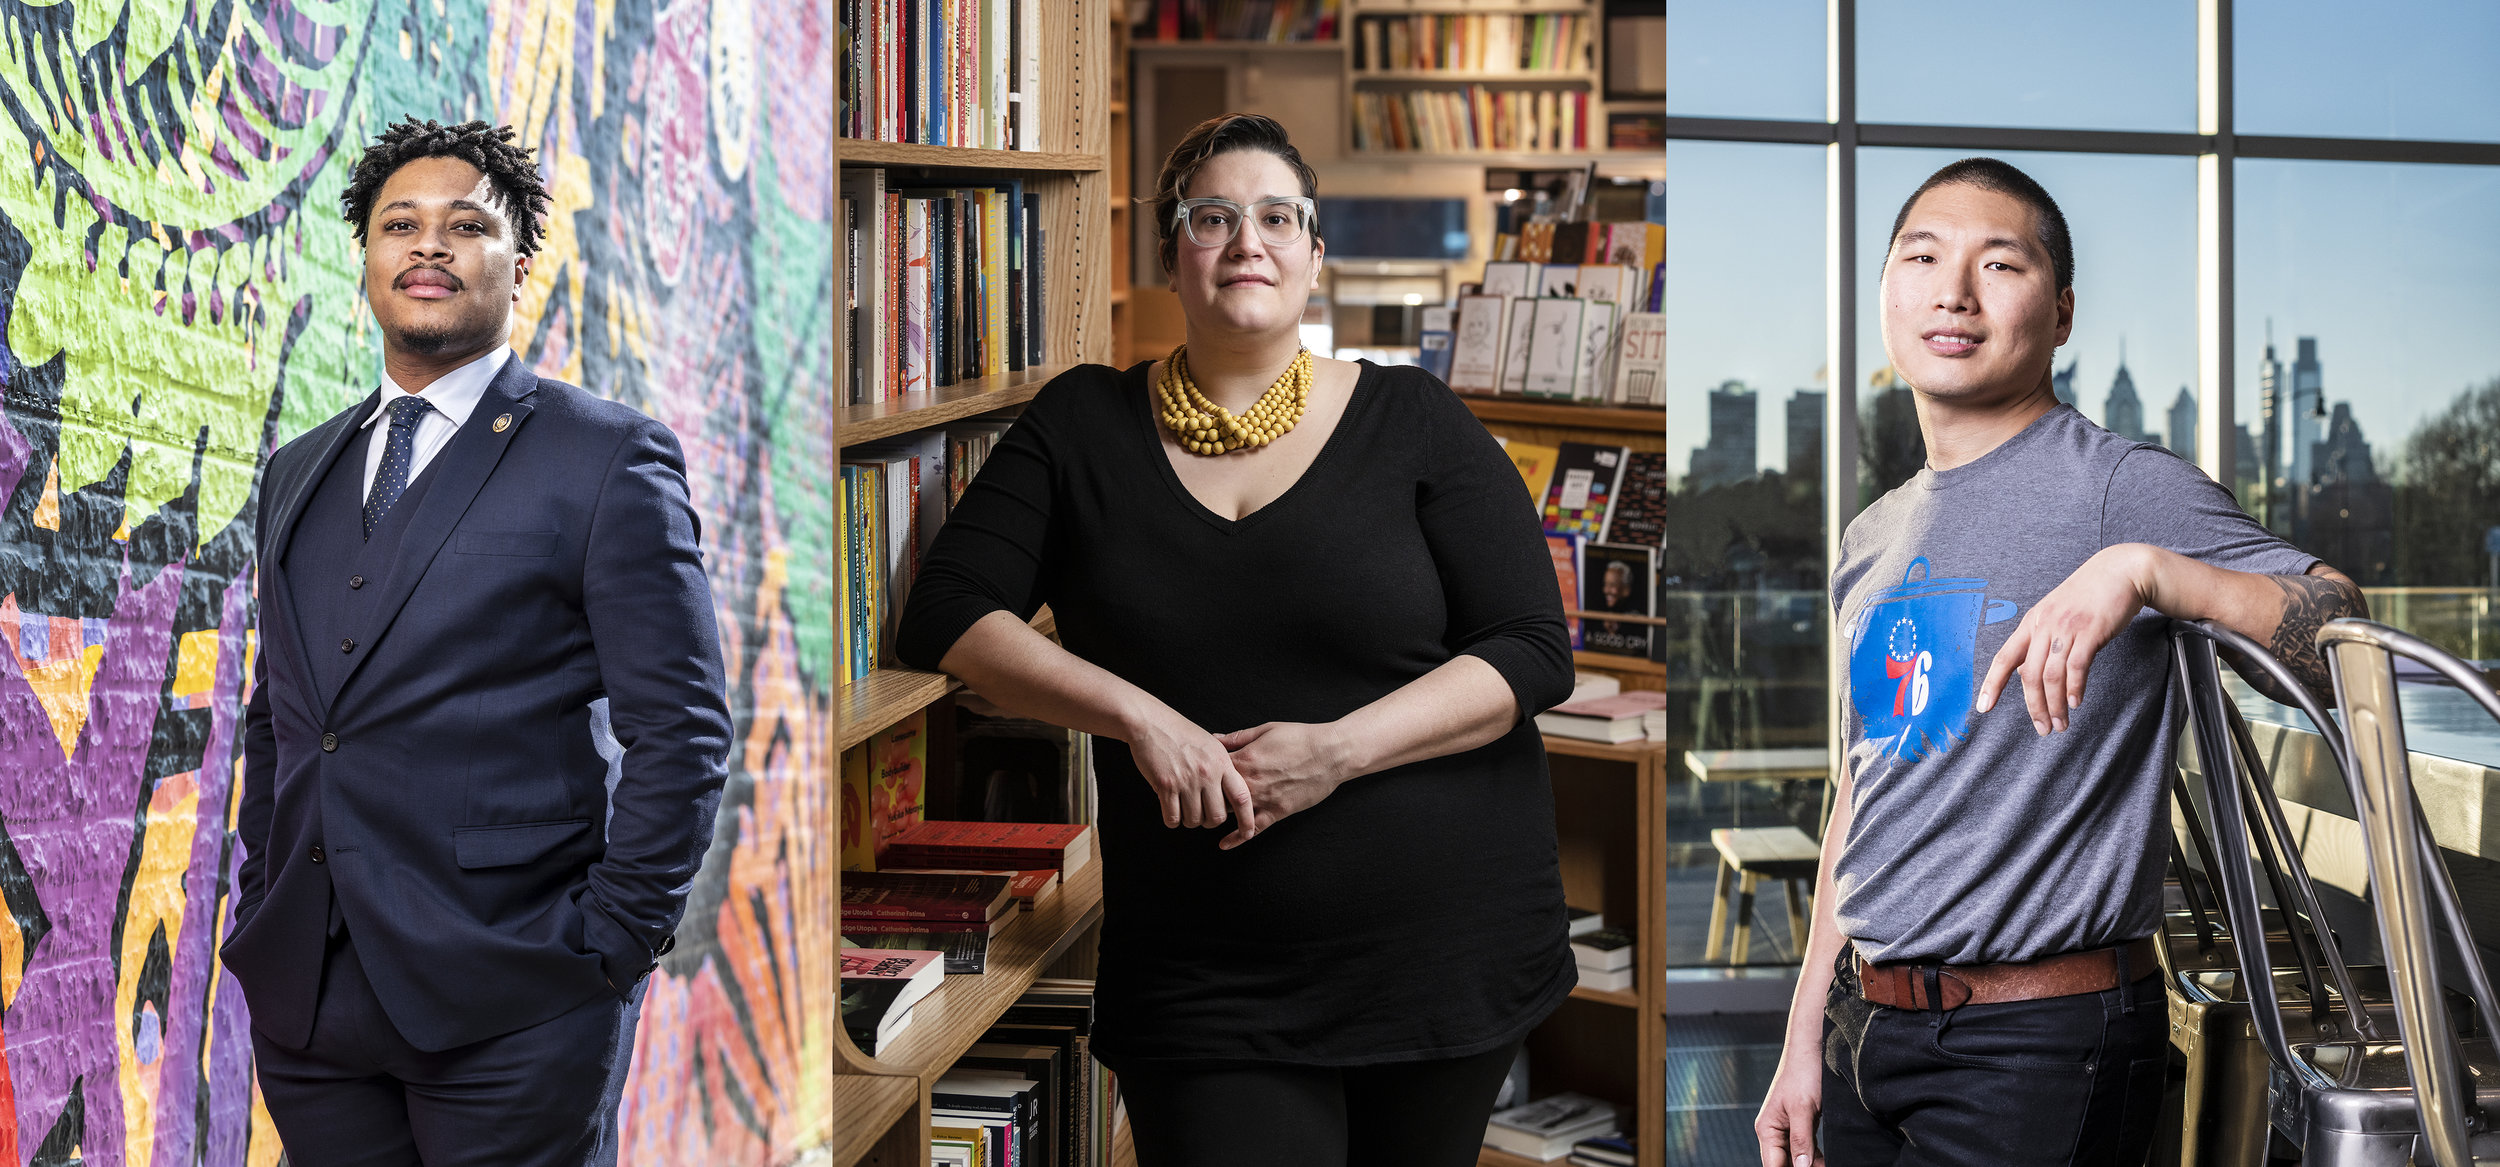 Malcolm Kenyatta, Carmen Maria Machado, Jae Hee Choe, as photographed for April 2019 issue of Philadelphia Magazine